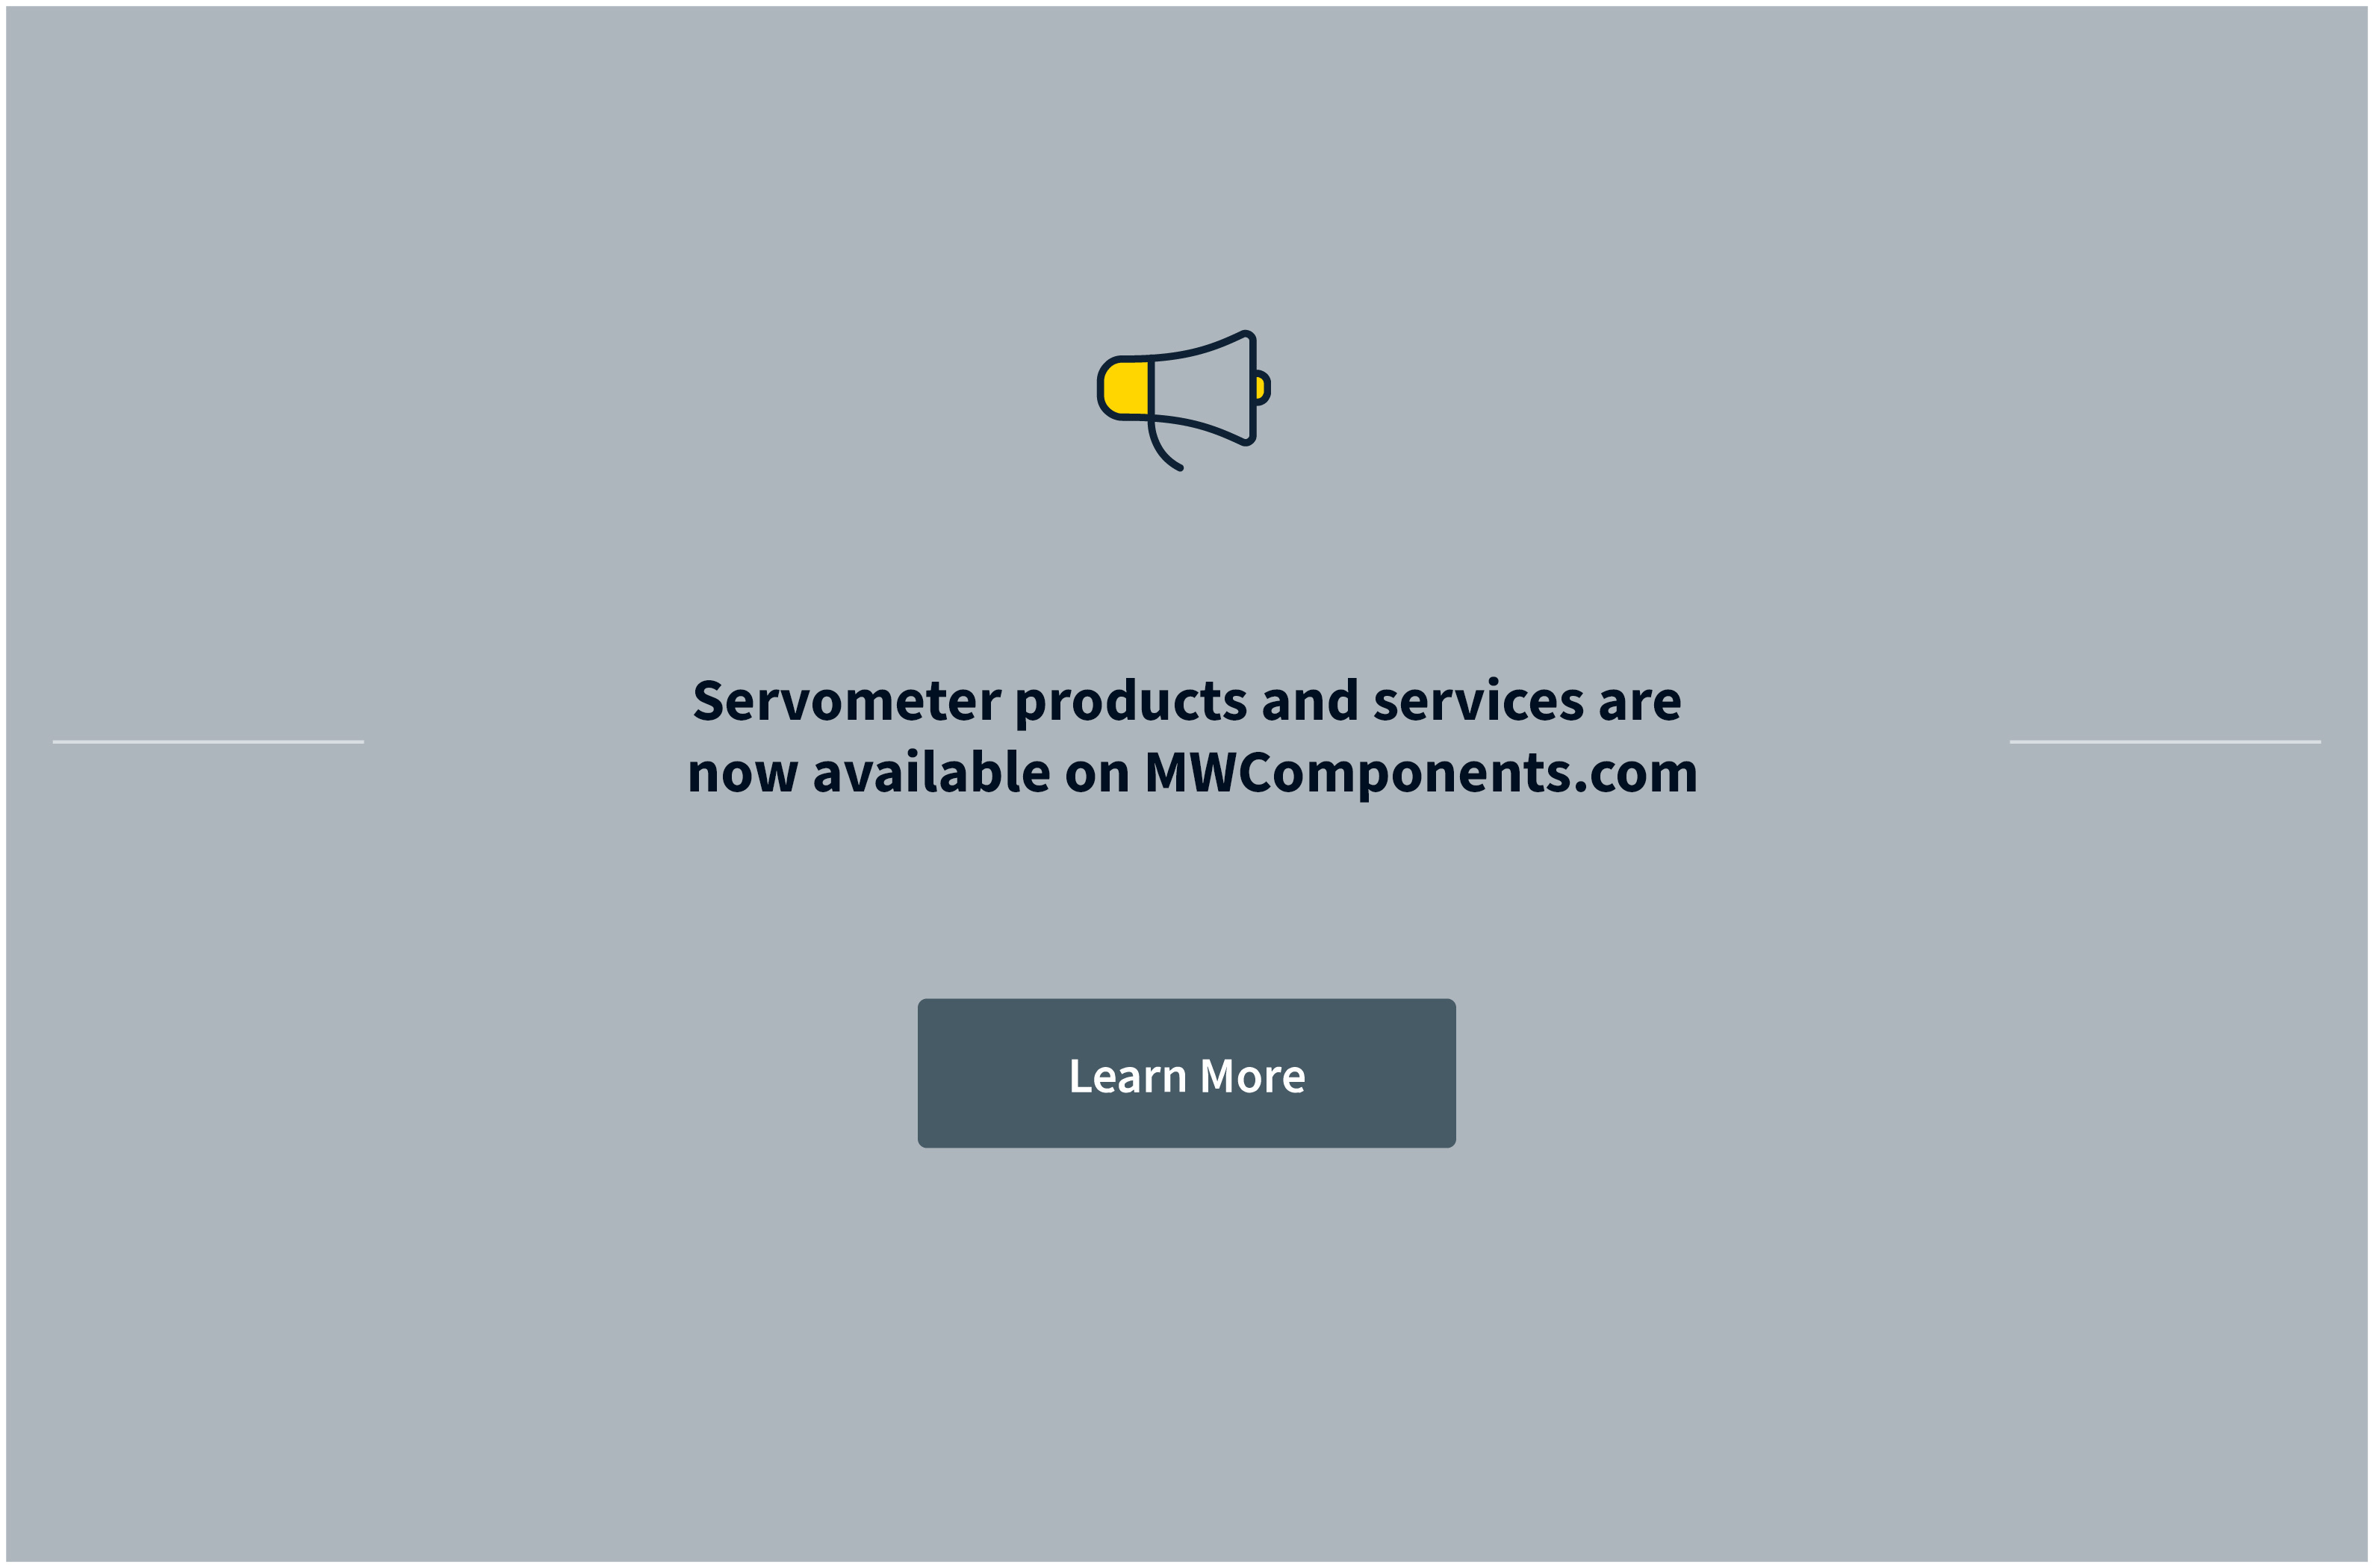 Servometer is now part of MW Components